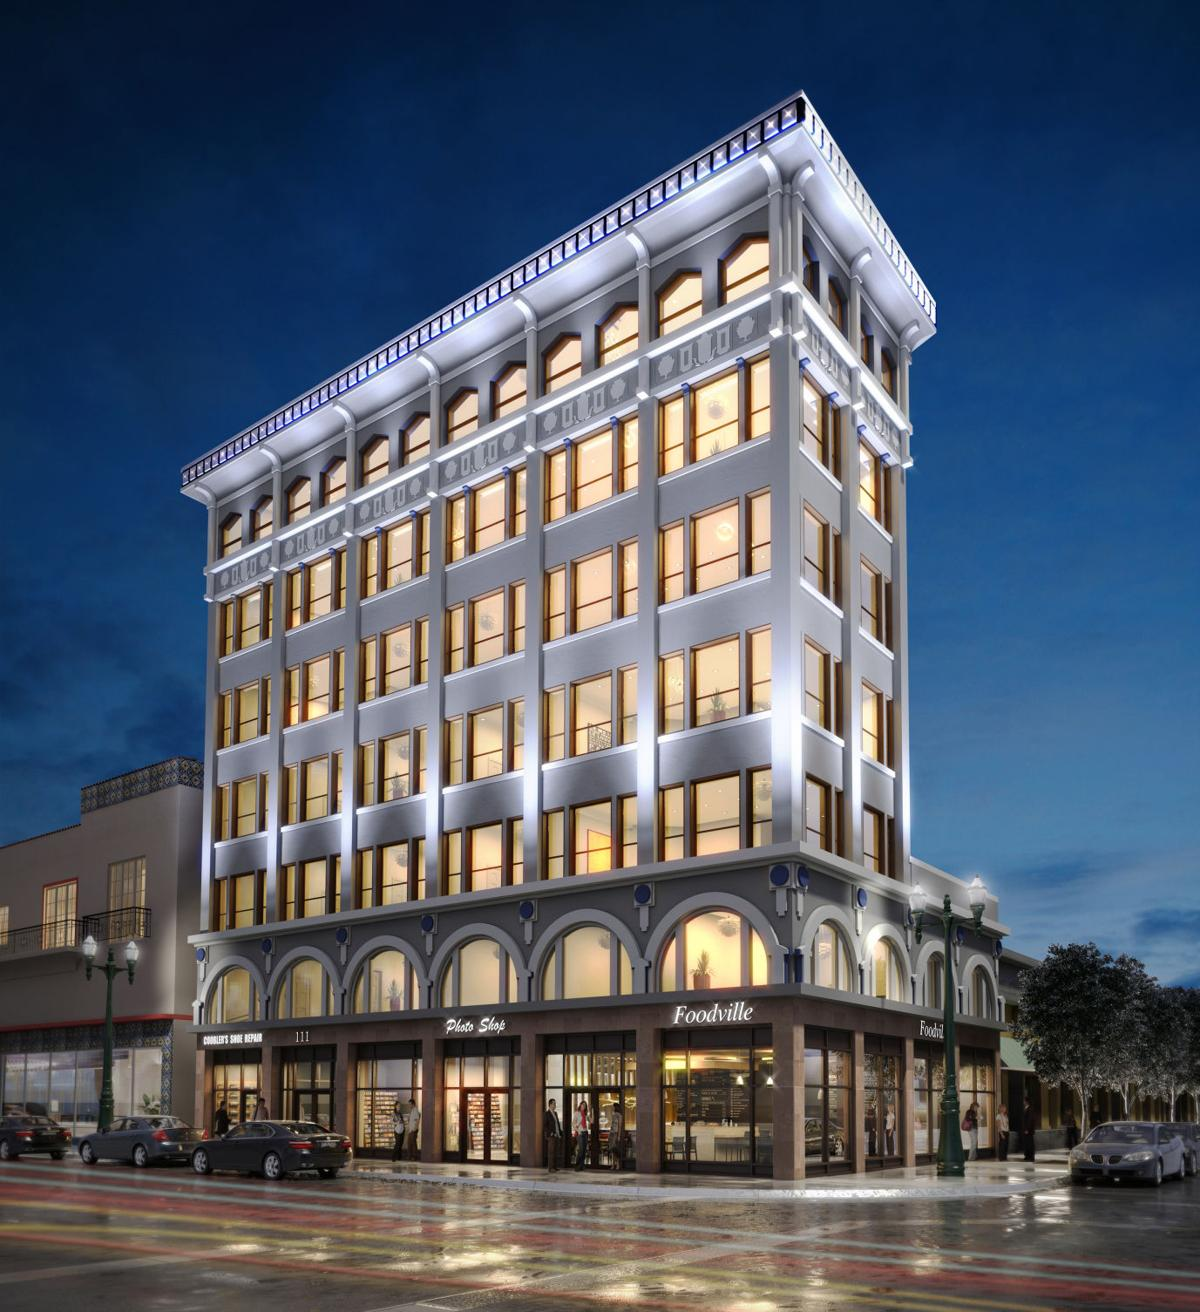 A rendering of the Abdou Building